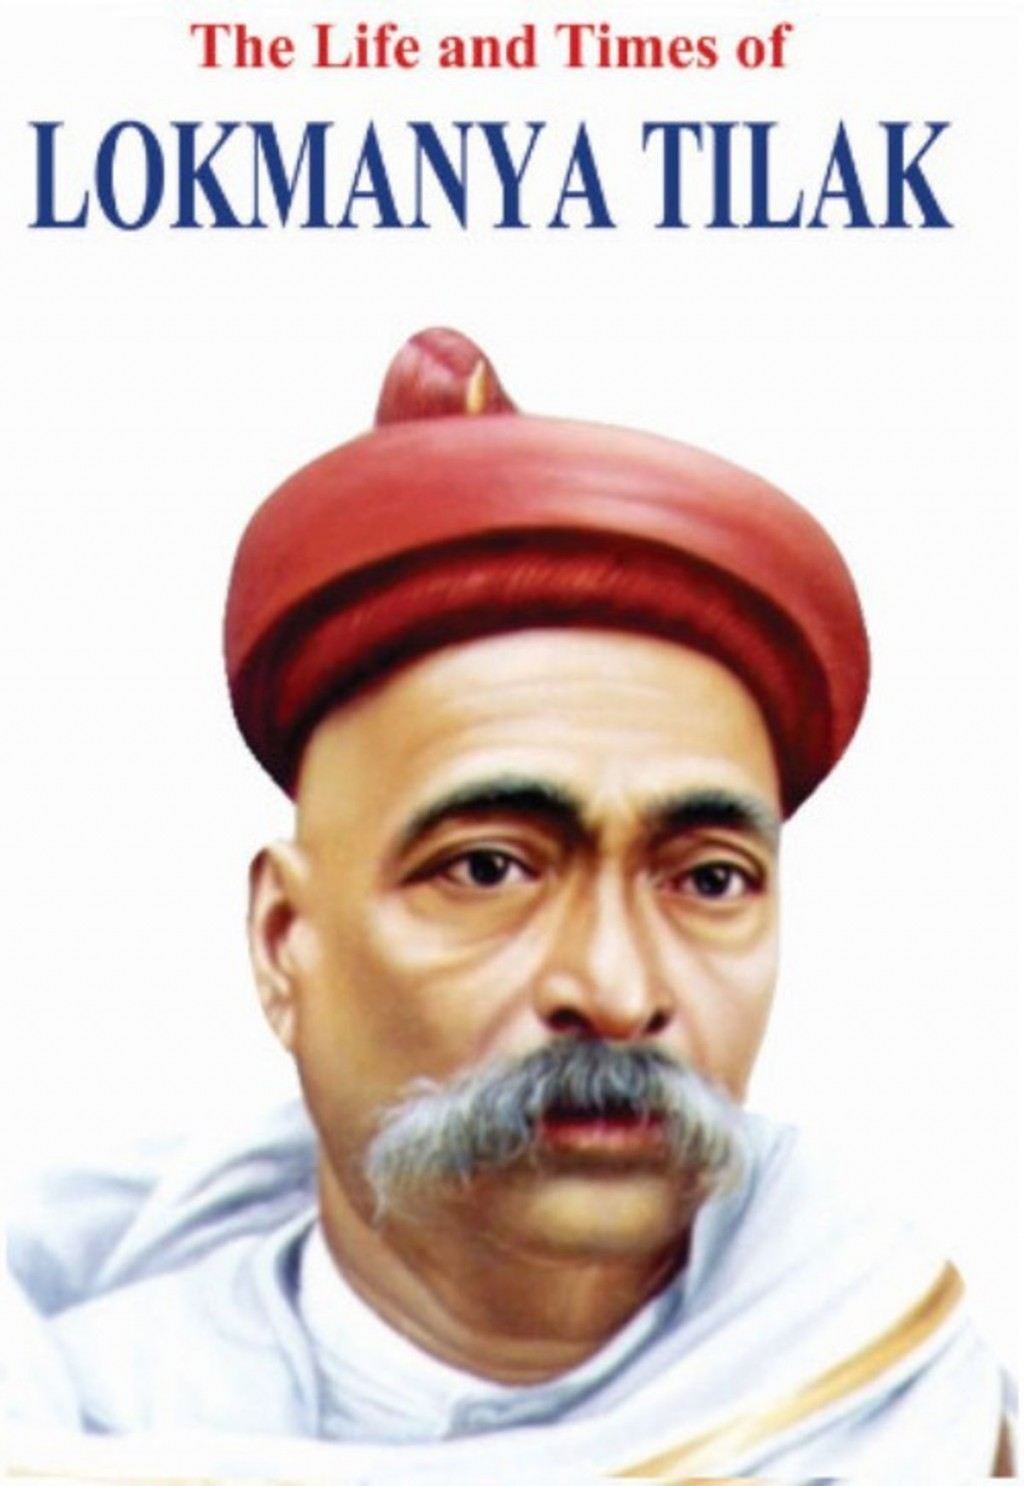 023 Life And Times Of Lokmanya Tilak Essay Incredible Aste Tar In Marathi On Bal Gangadhar Hindi Pdf Large